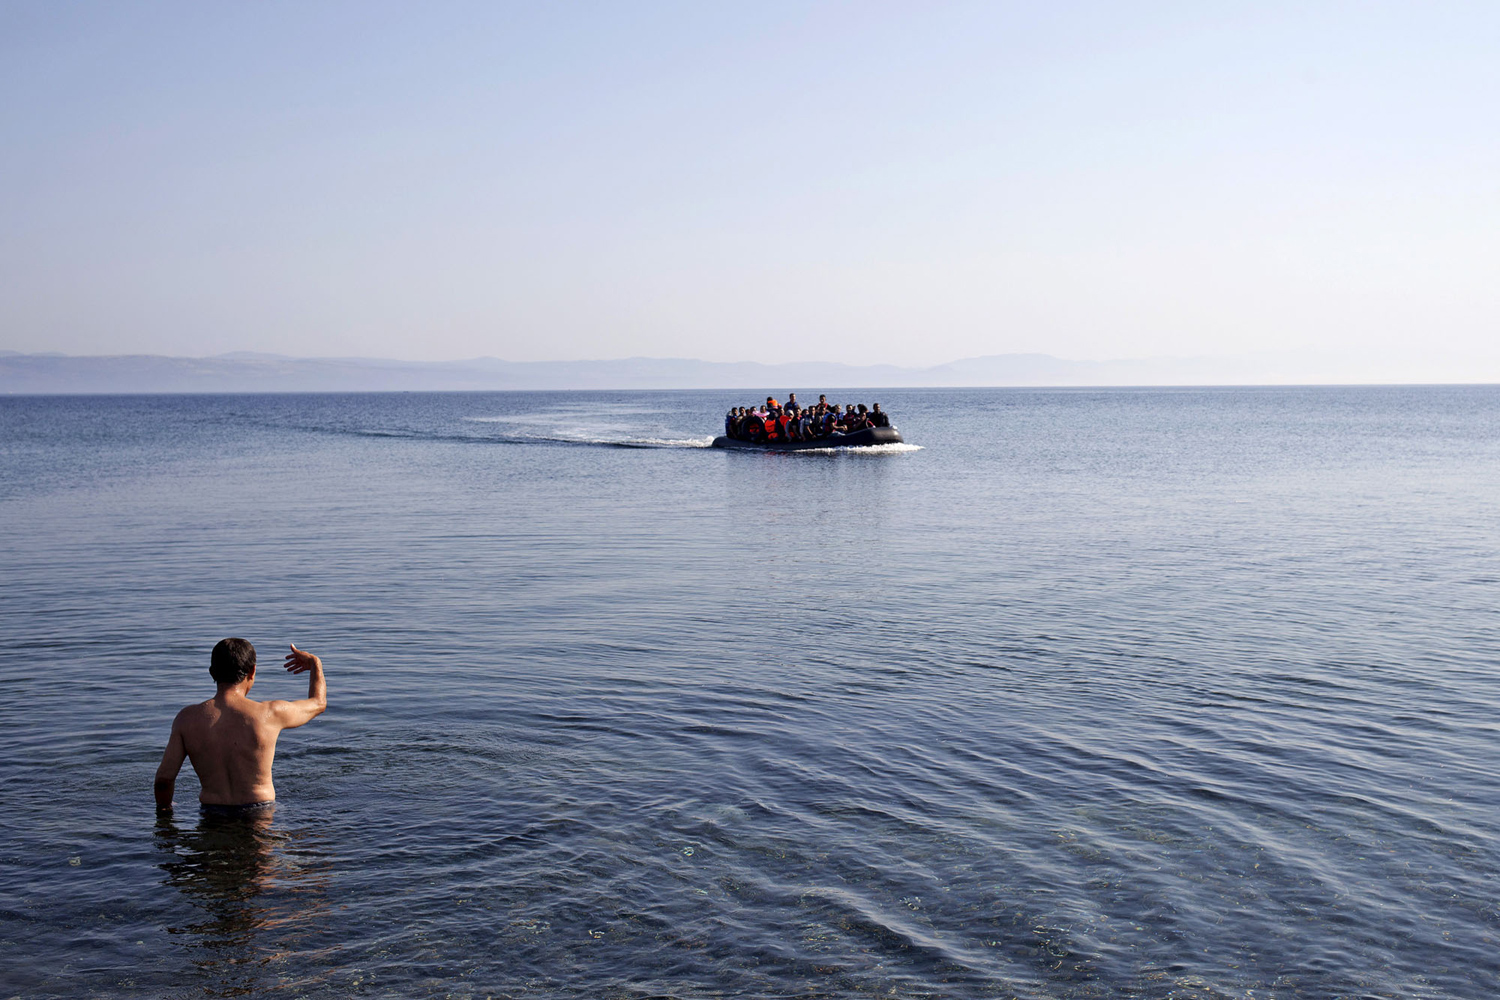 The path of migrants in Europe 07